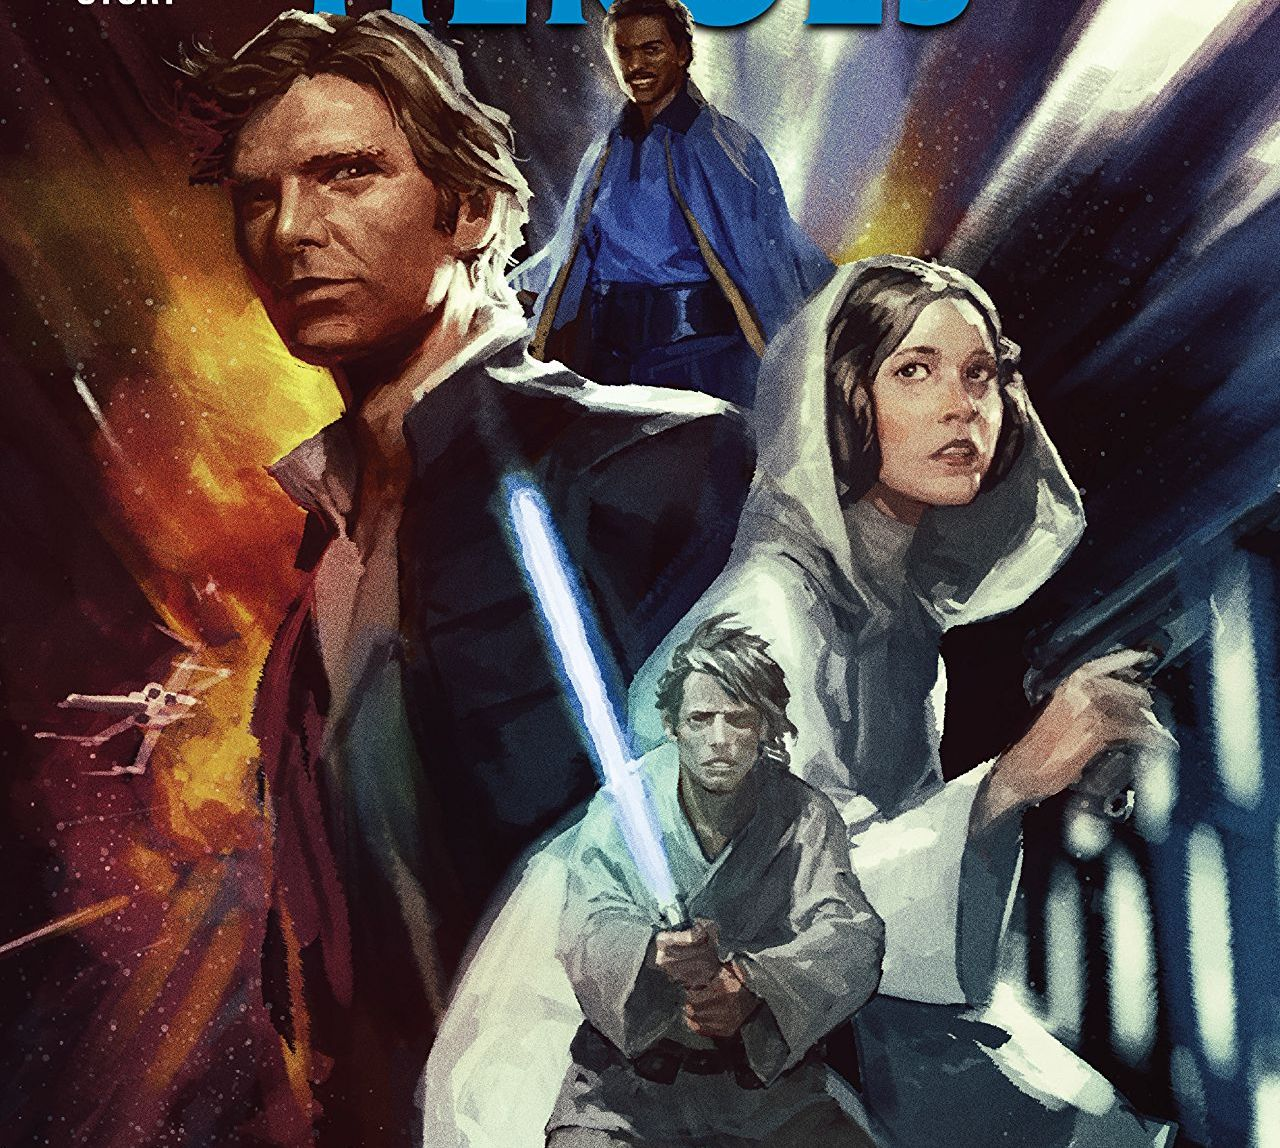 It's an excellent collection of stories with our favorite Star Wars heroes.